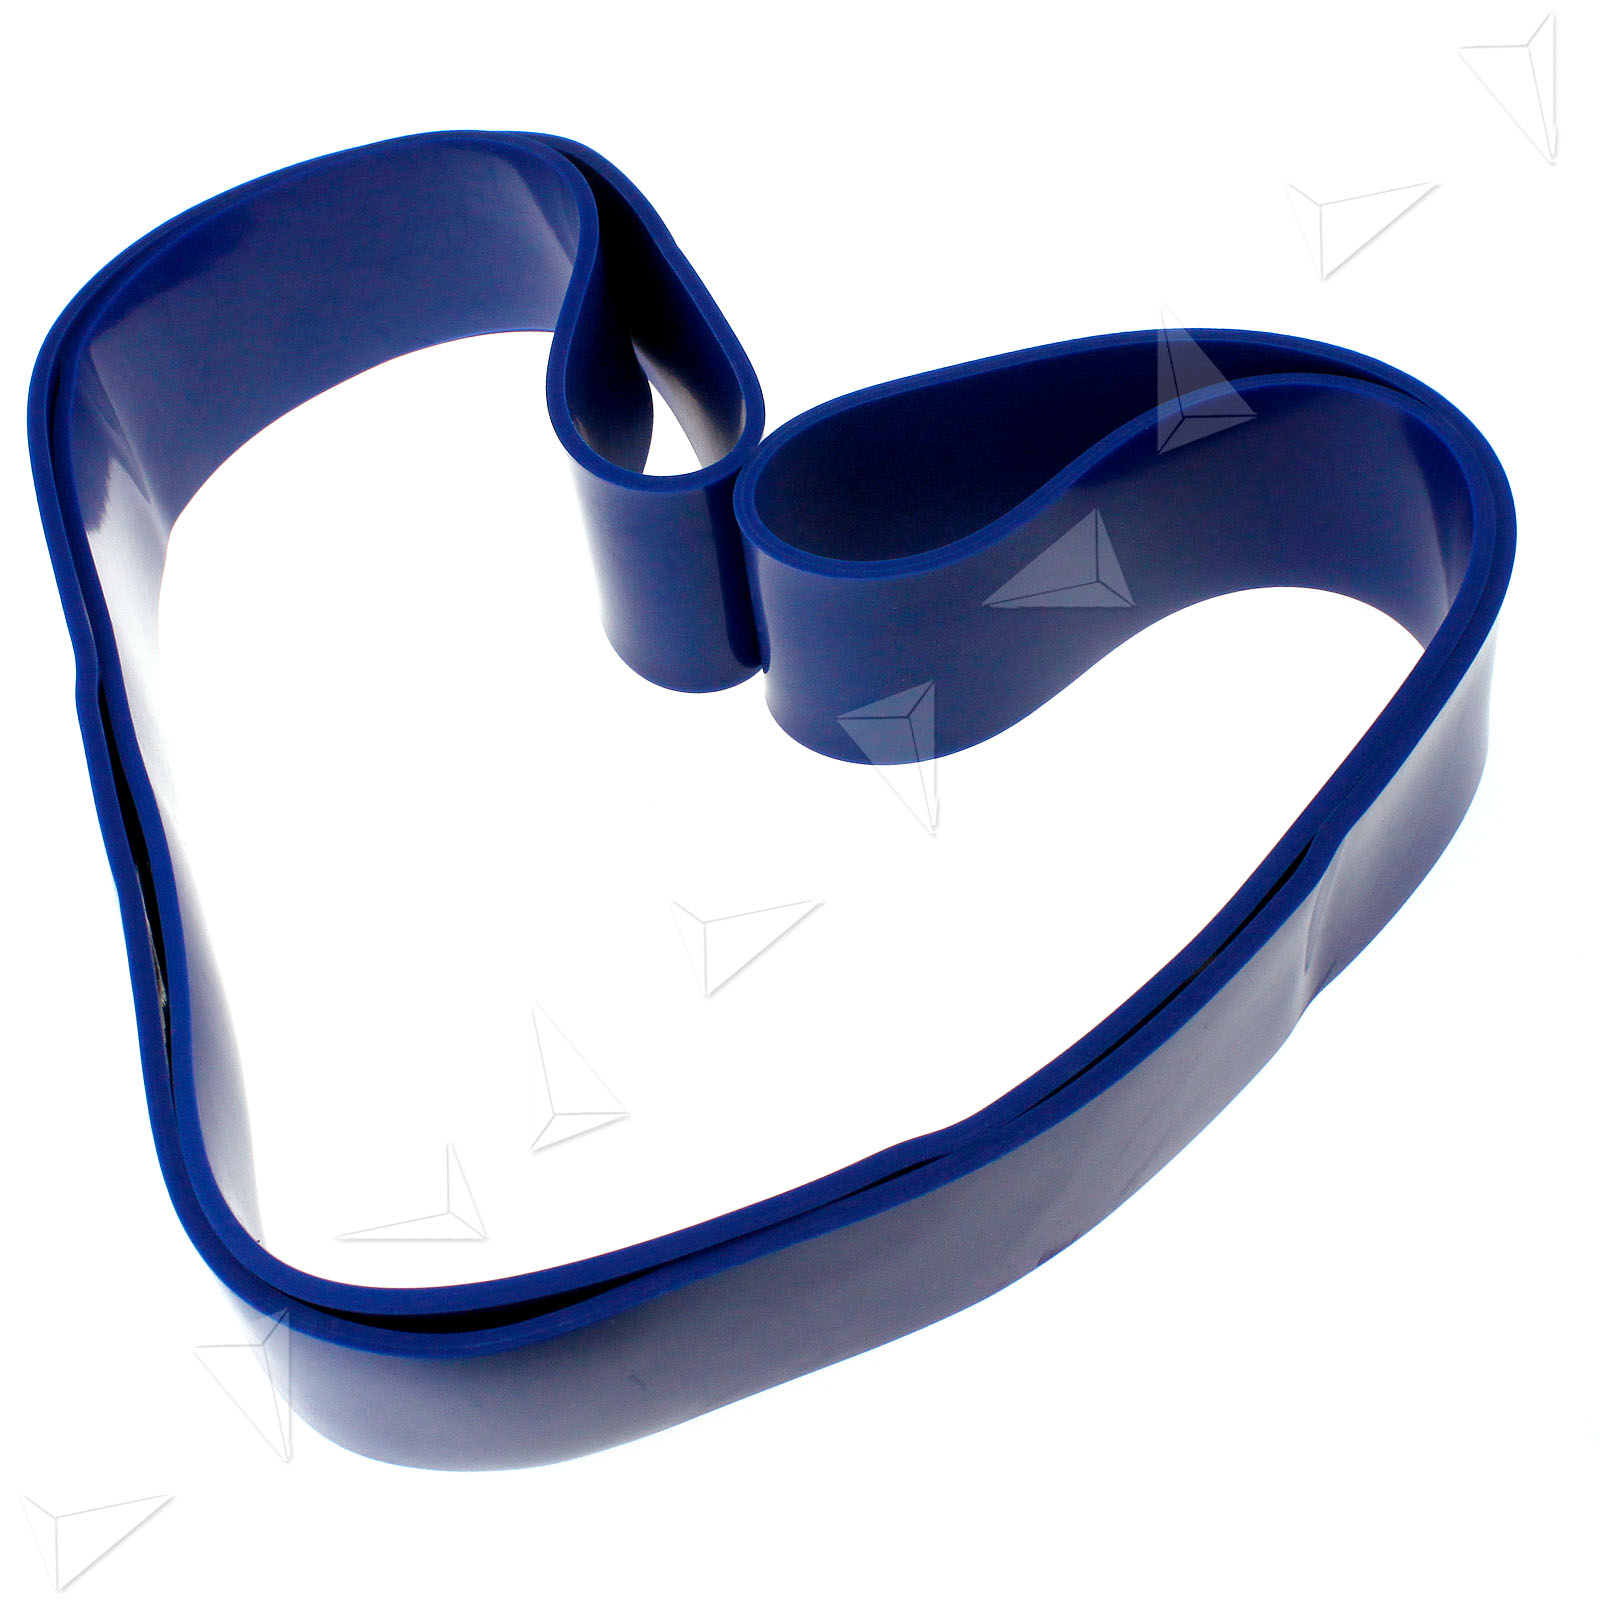 Blue 64mm Resistance Band Gym Fitness Exercise Loop Yoga